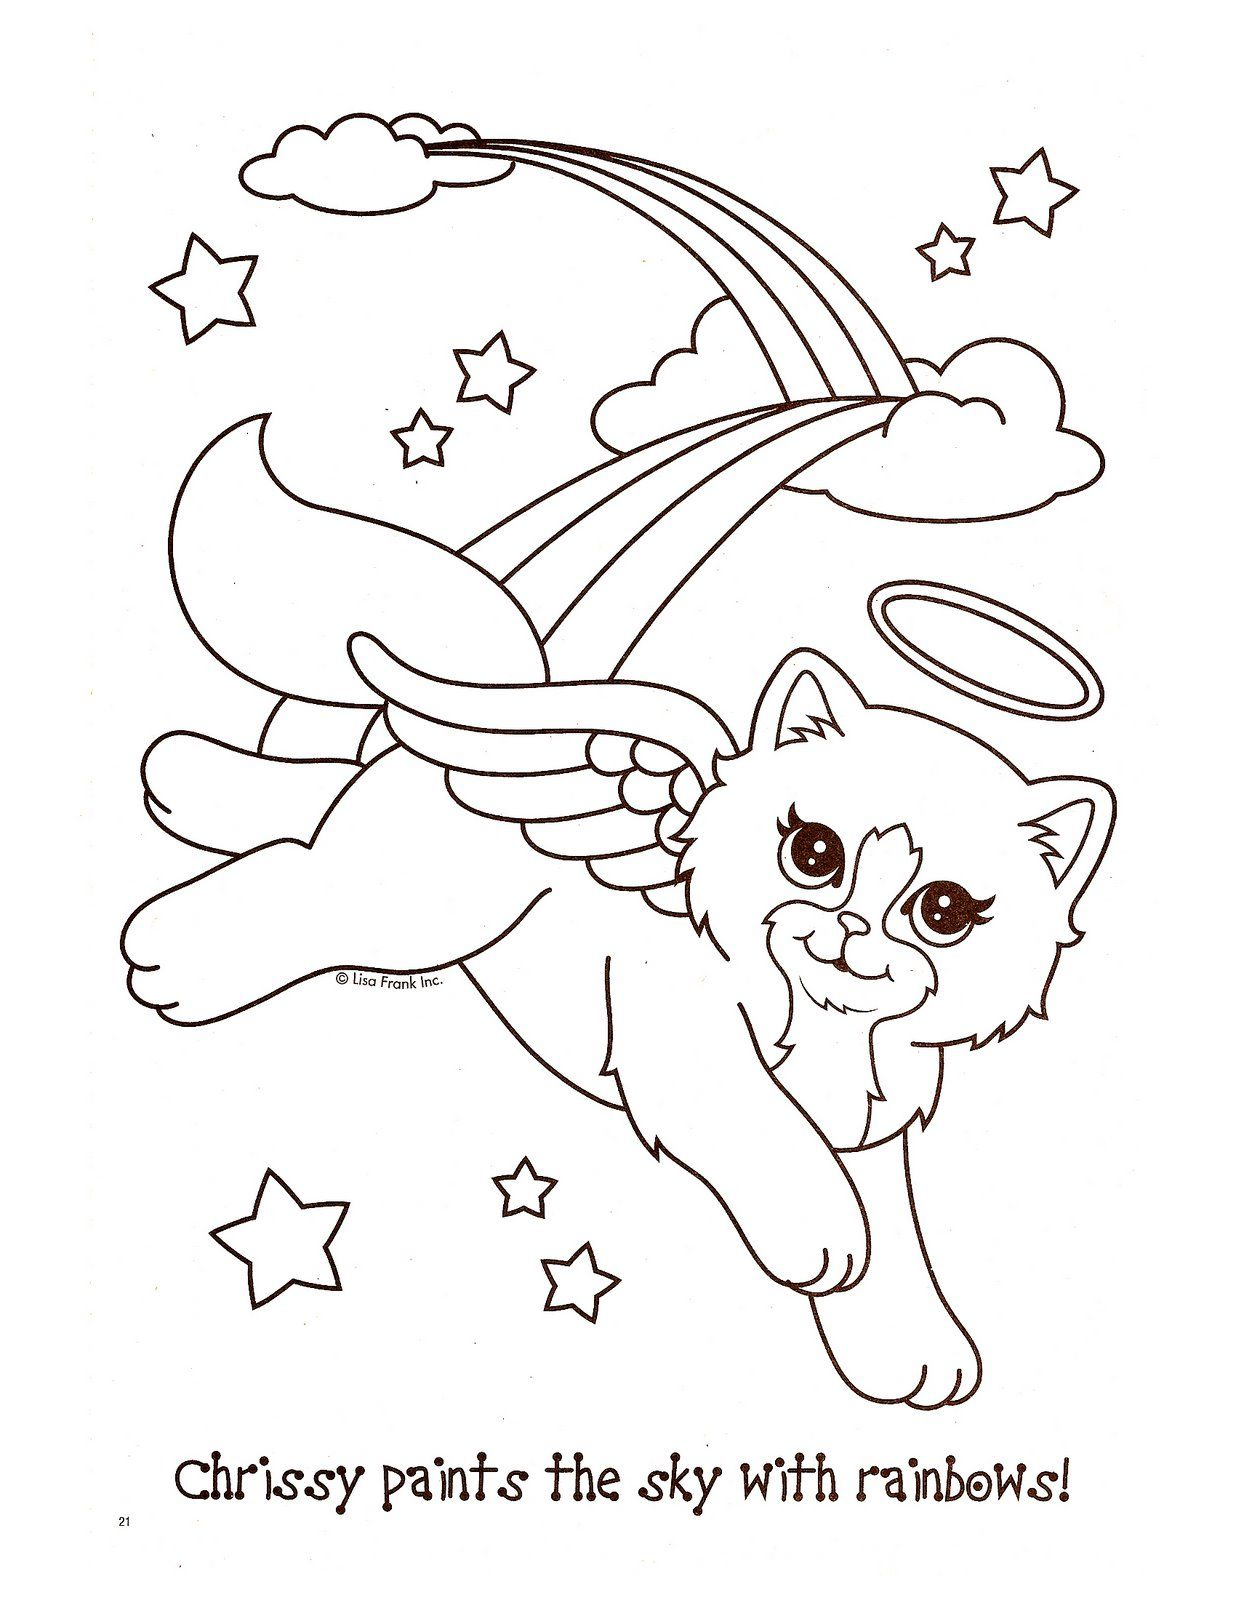 Lisa frank coloring pages to download and print for free | Lisa ...